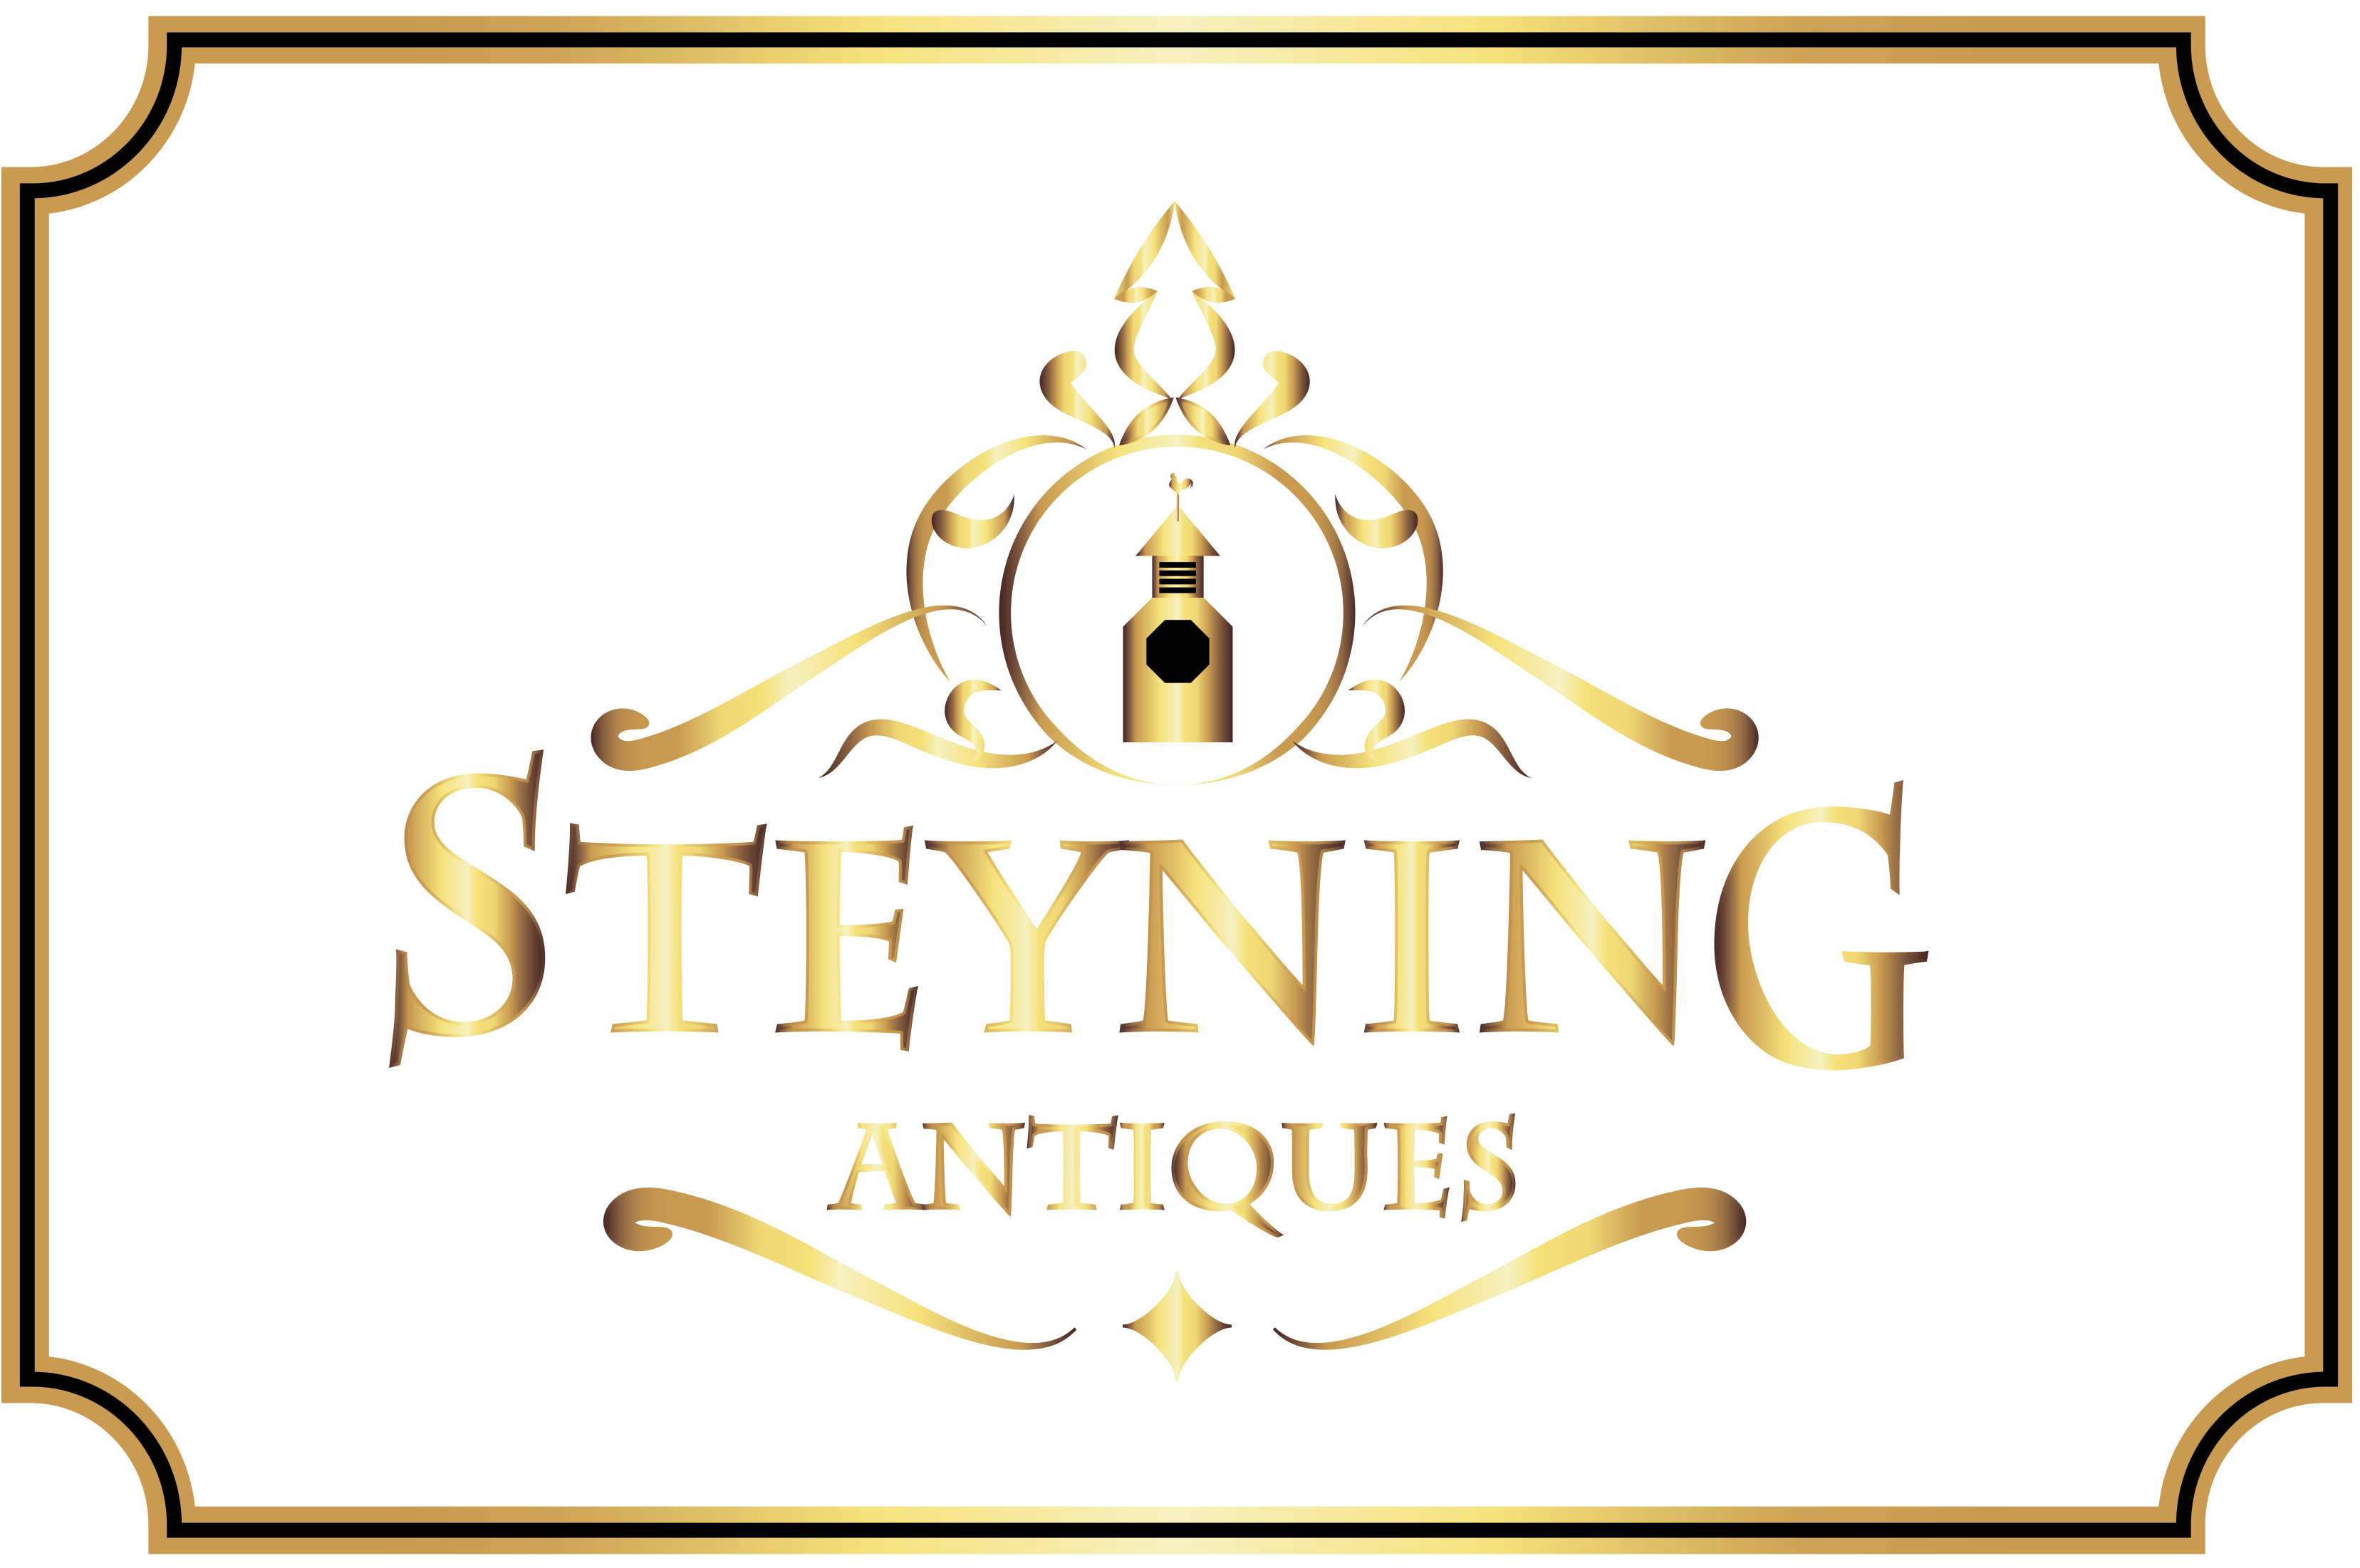 Steyning Antiques logo